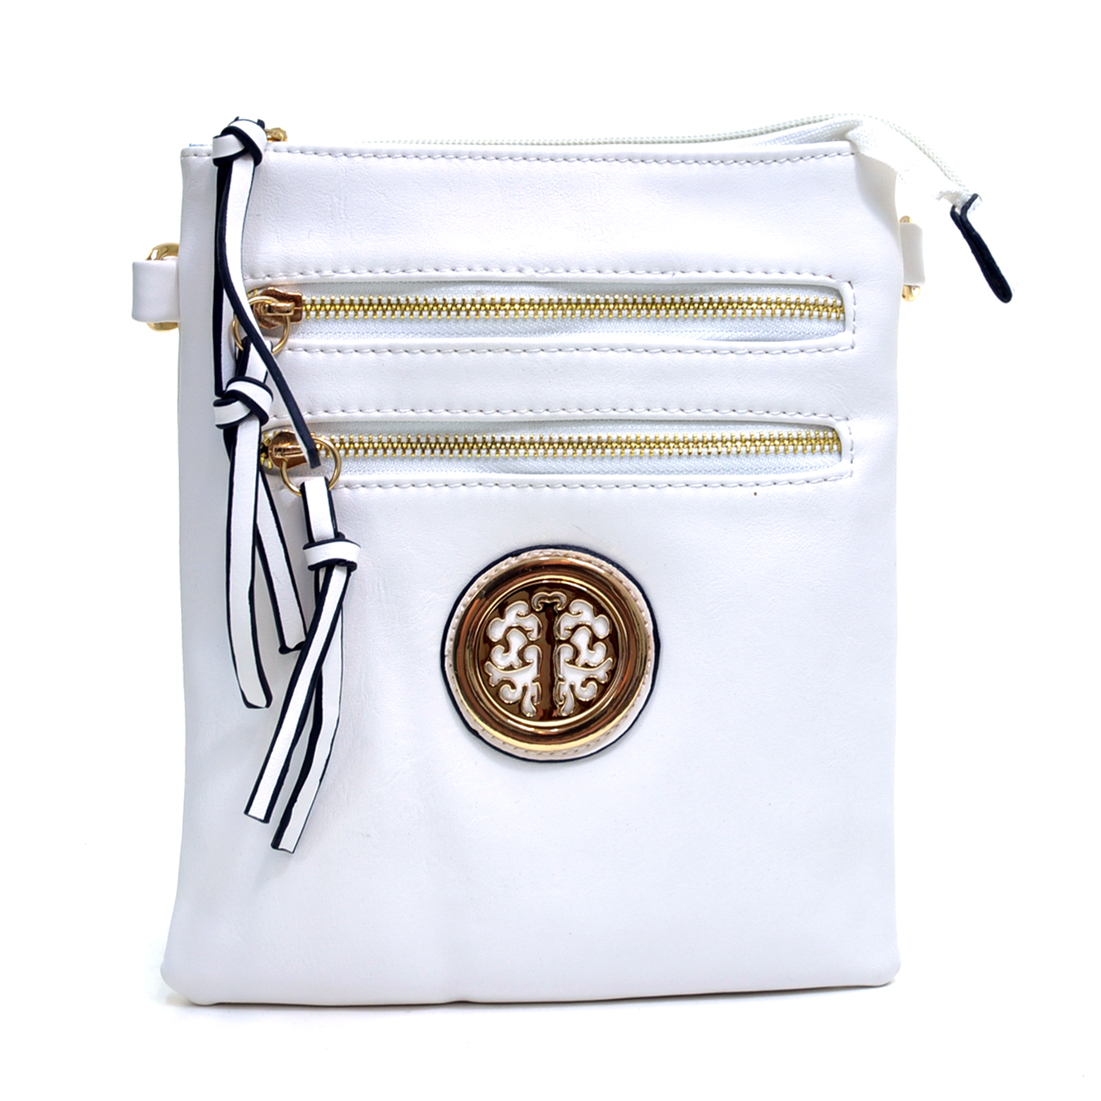 Gold Tone Emblem Zip Top Faux Leather Messenger Cross Body Bag